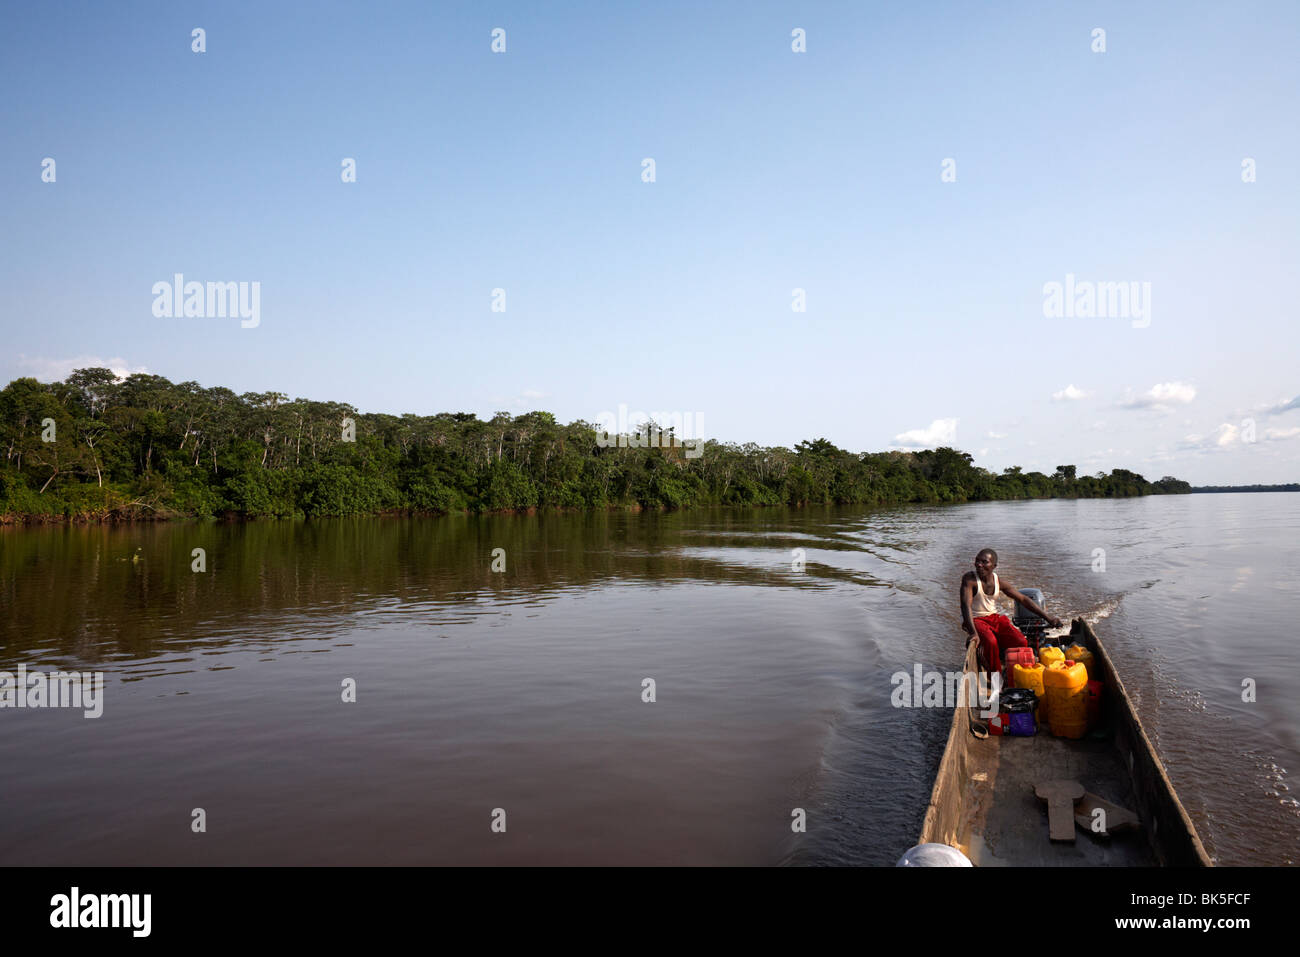 A dugout canoe on the Congo River, Democratic Republic of Congo, Africa - Stock Image